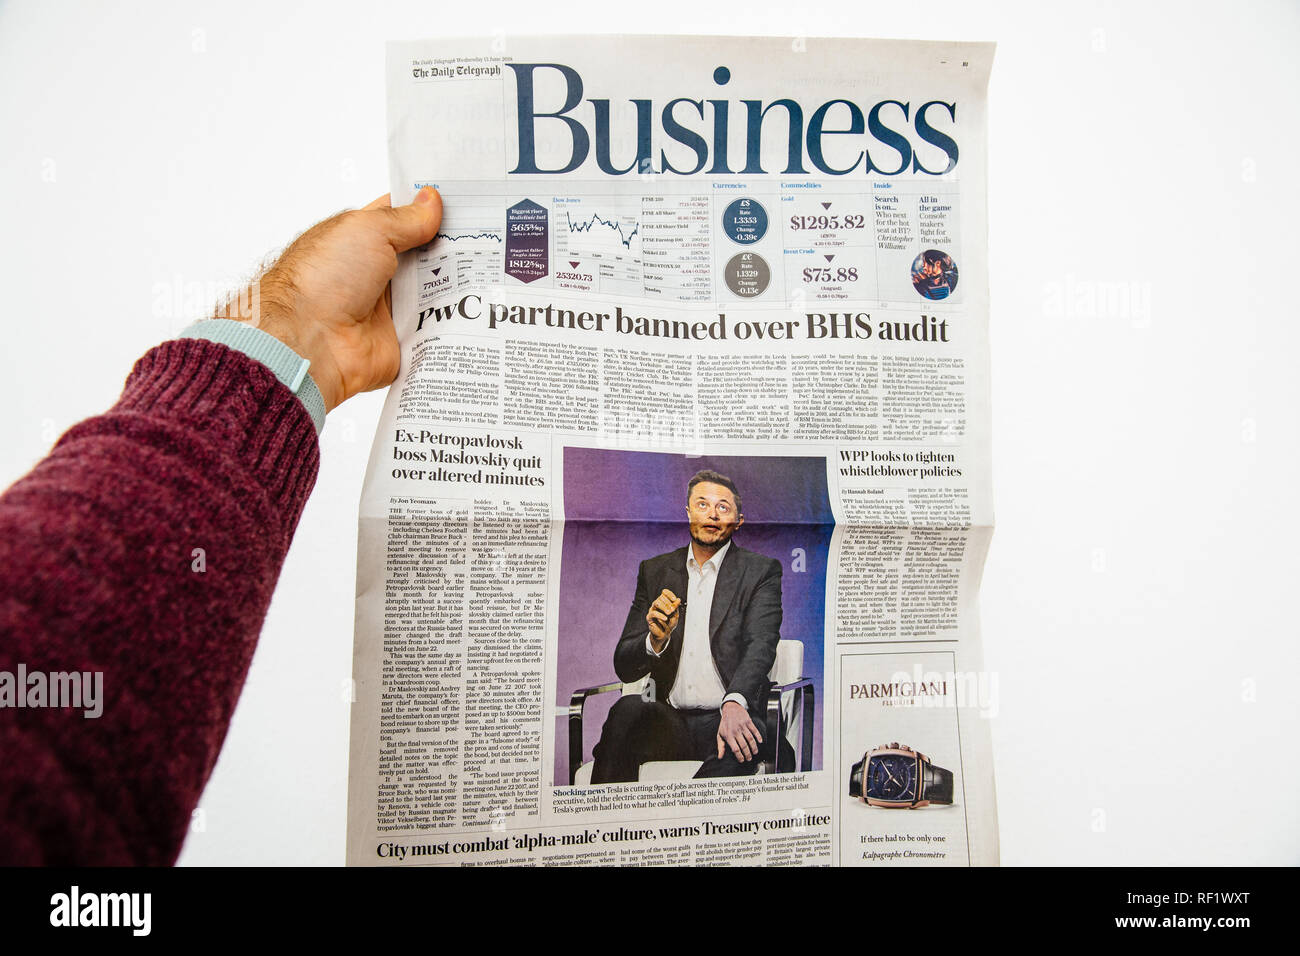 PARIS, FRANCE - JUN 13, 2018: Man holding The Daily Telegraph with portrait of Elon Musk CEO of tesla saying he is cutting 9 percent of jobs - Stock Image